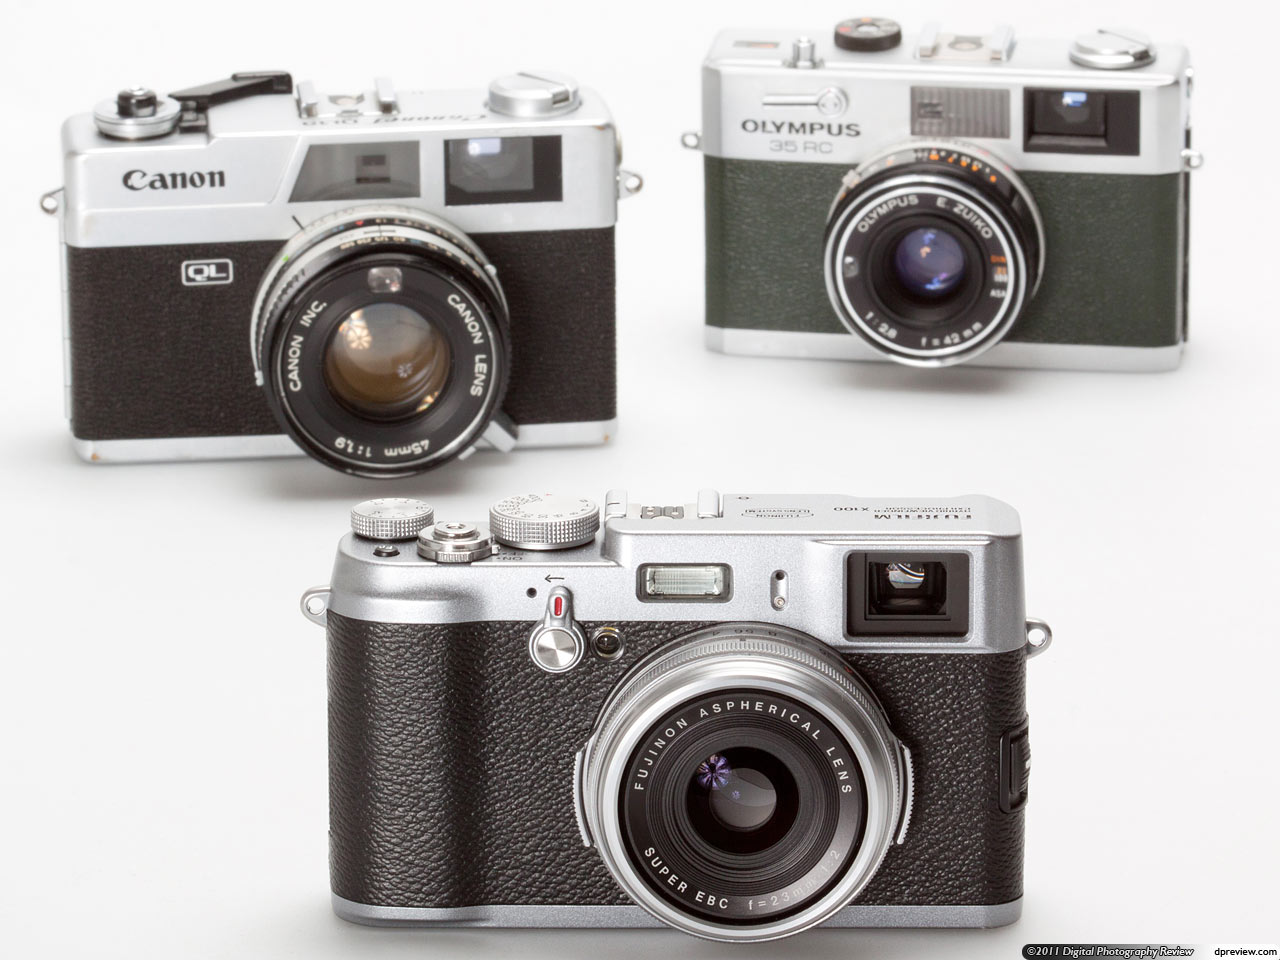 Fuji Fuji Fujifilm Finepix X100 In Depth Review Digital Photography